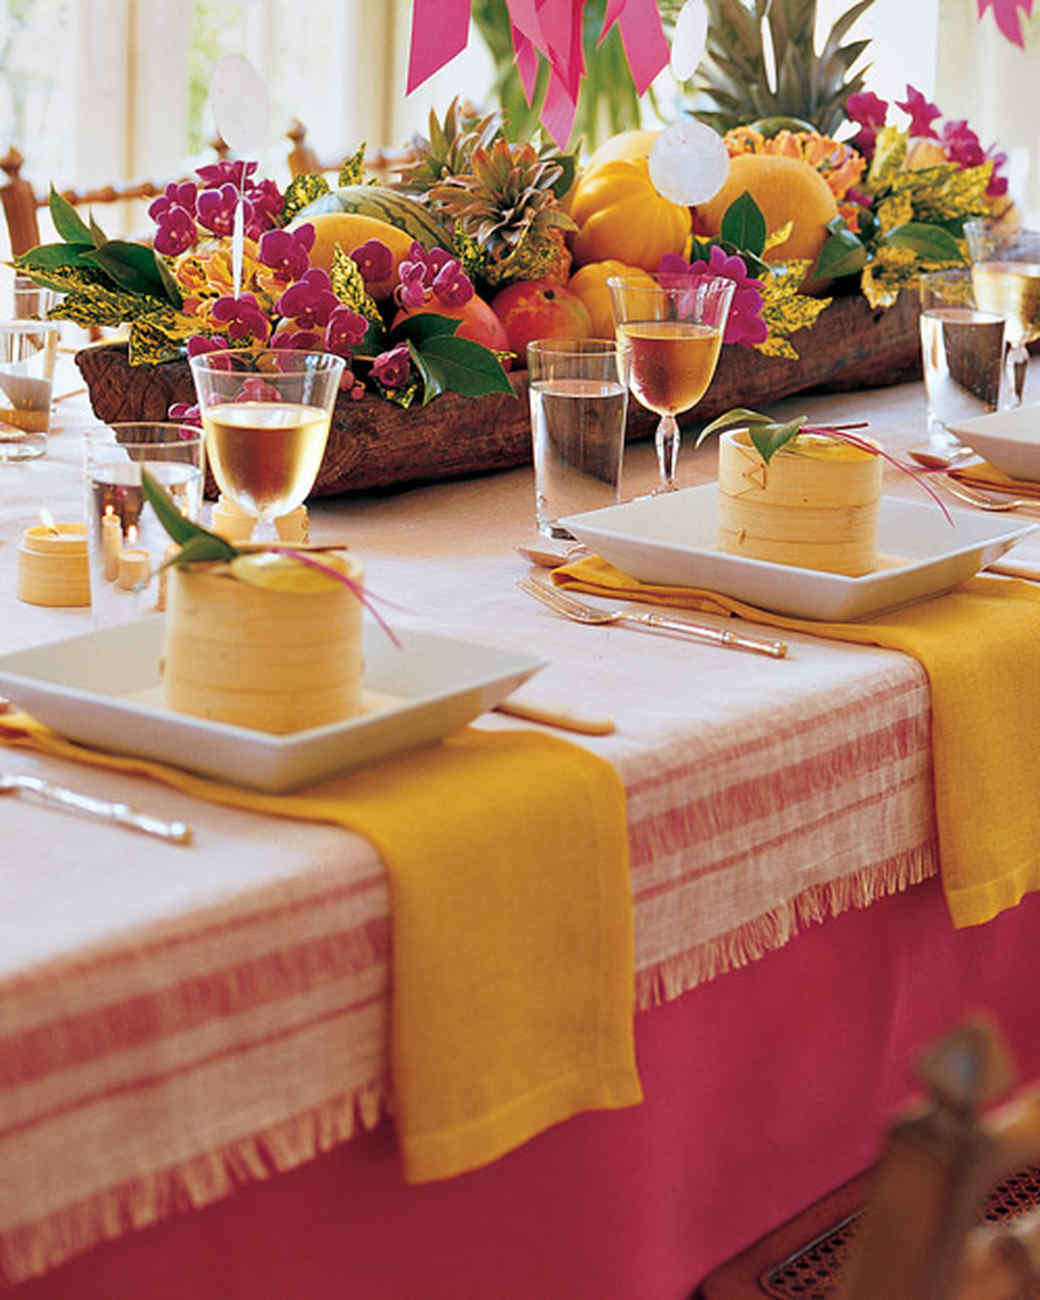 tuscan table setting ideas & Tuscan Table Setting Ideas. Best Table Settings Images On Pinterest ...